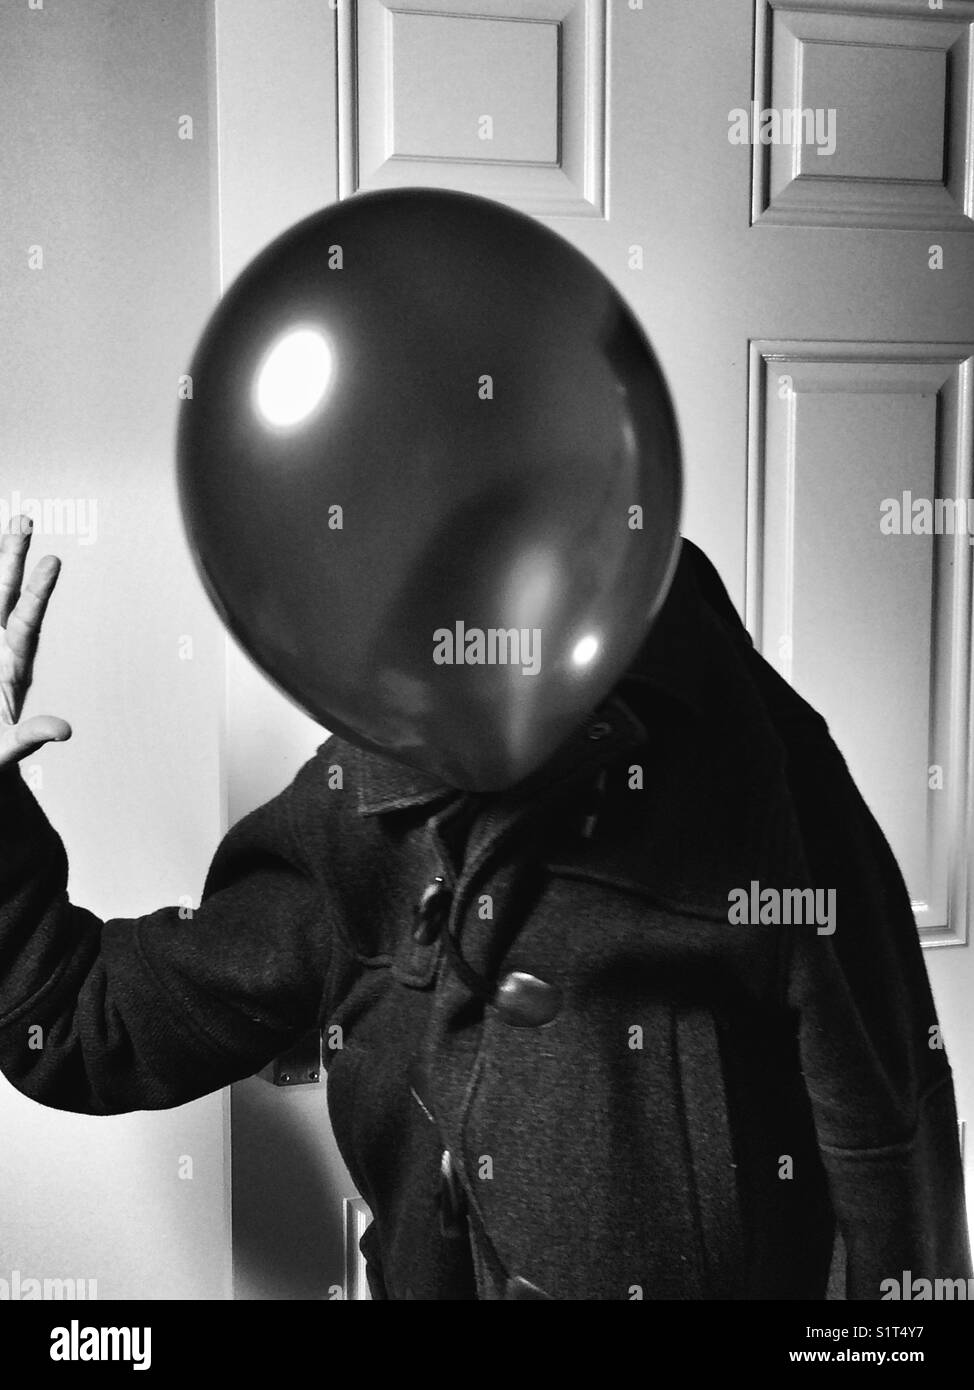 Mr blue/balloon walking and making a gesture. - Stock Image